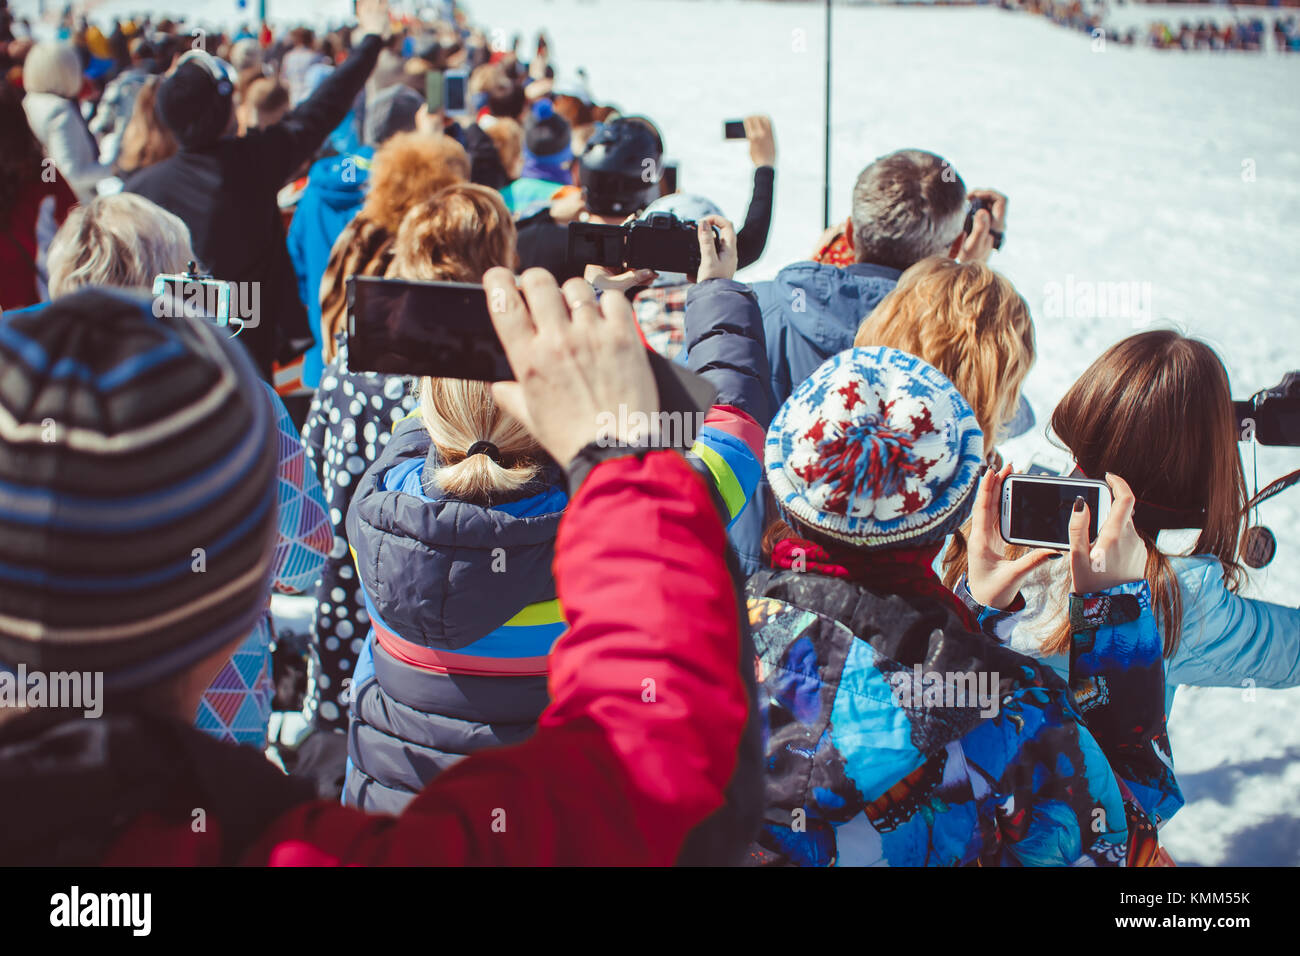 Sheregesh, Kemerovo region, Russia - April 16, 2016: Close up of recording video with smartphone during a ski descent - Stock Image